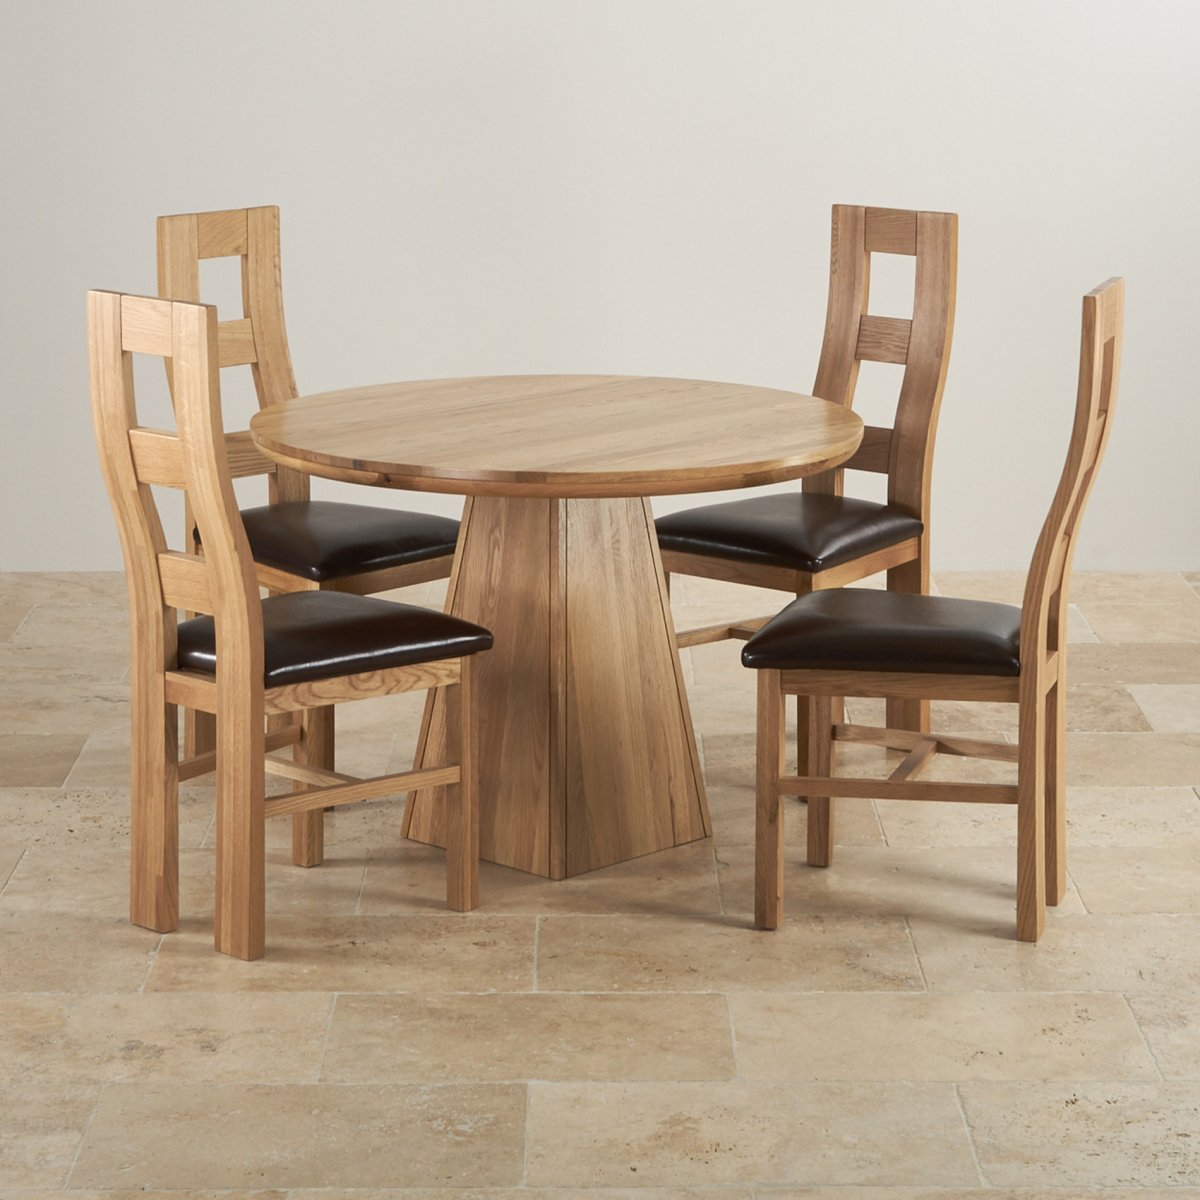 Provence solid oak dining set ft quot table with chairs